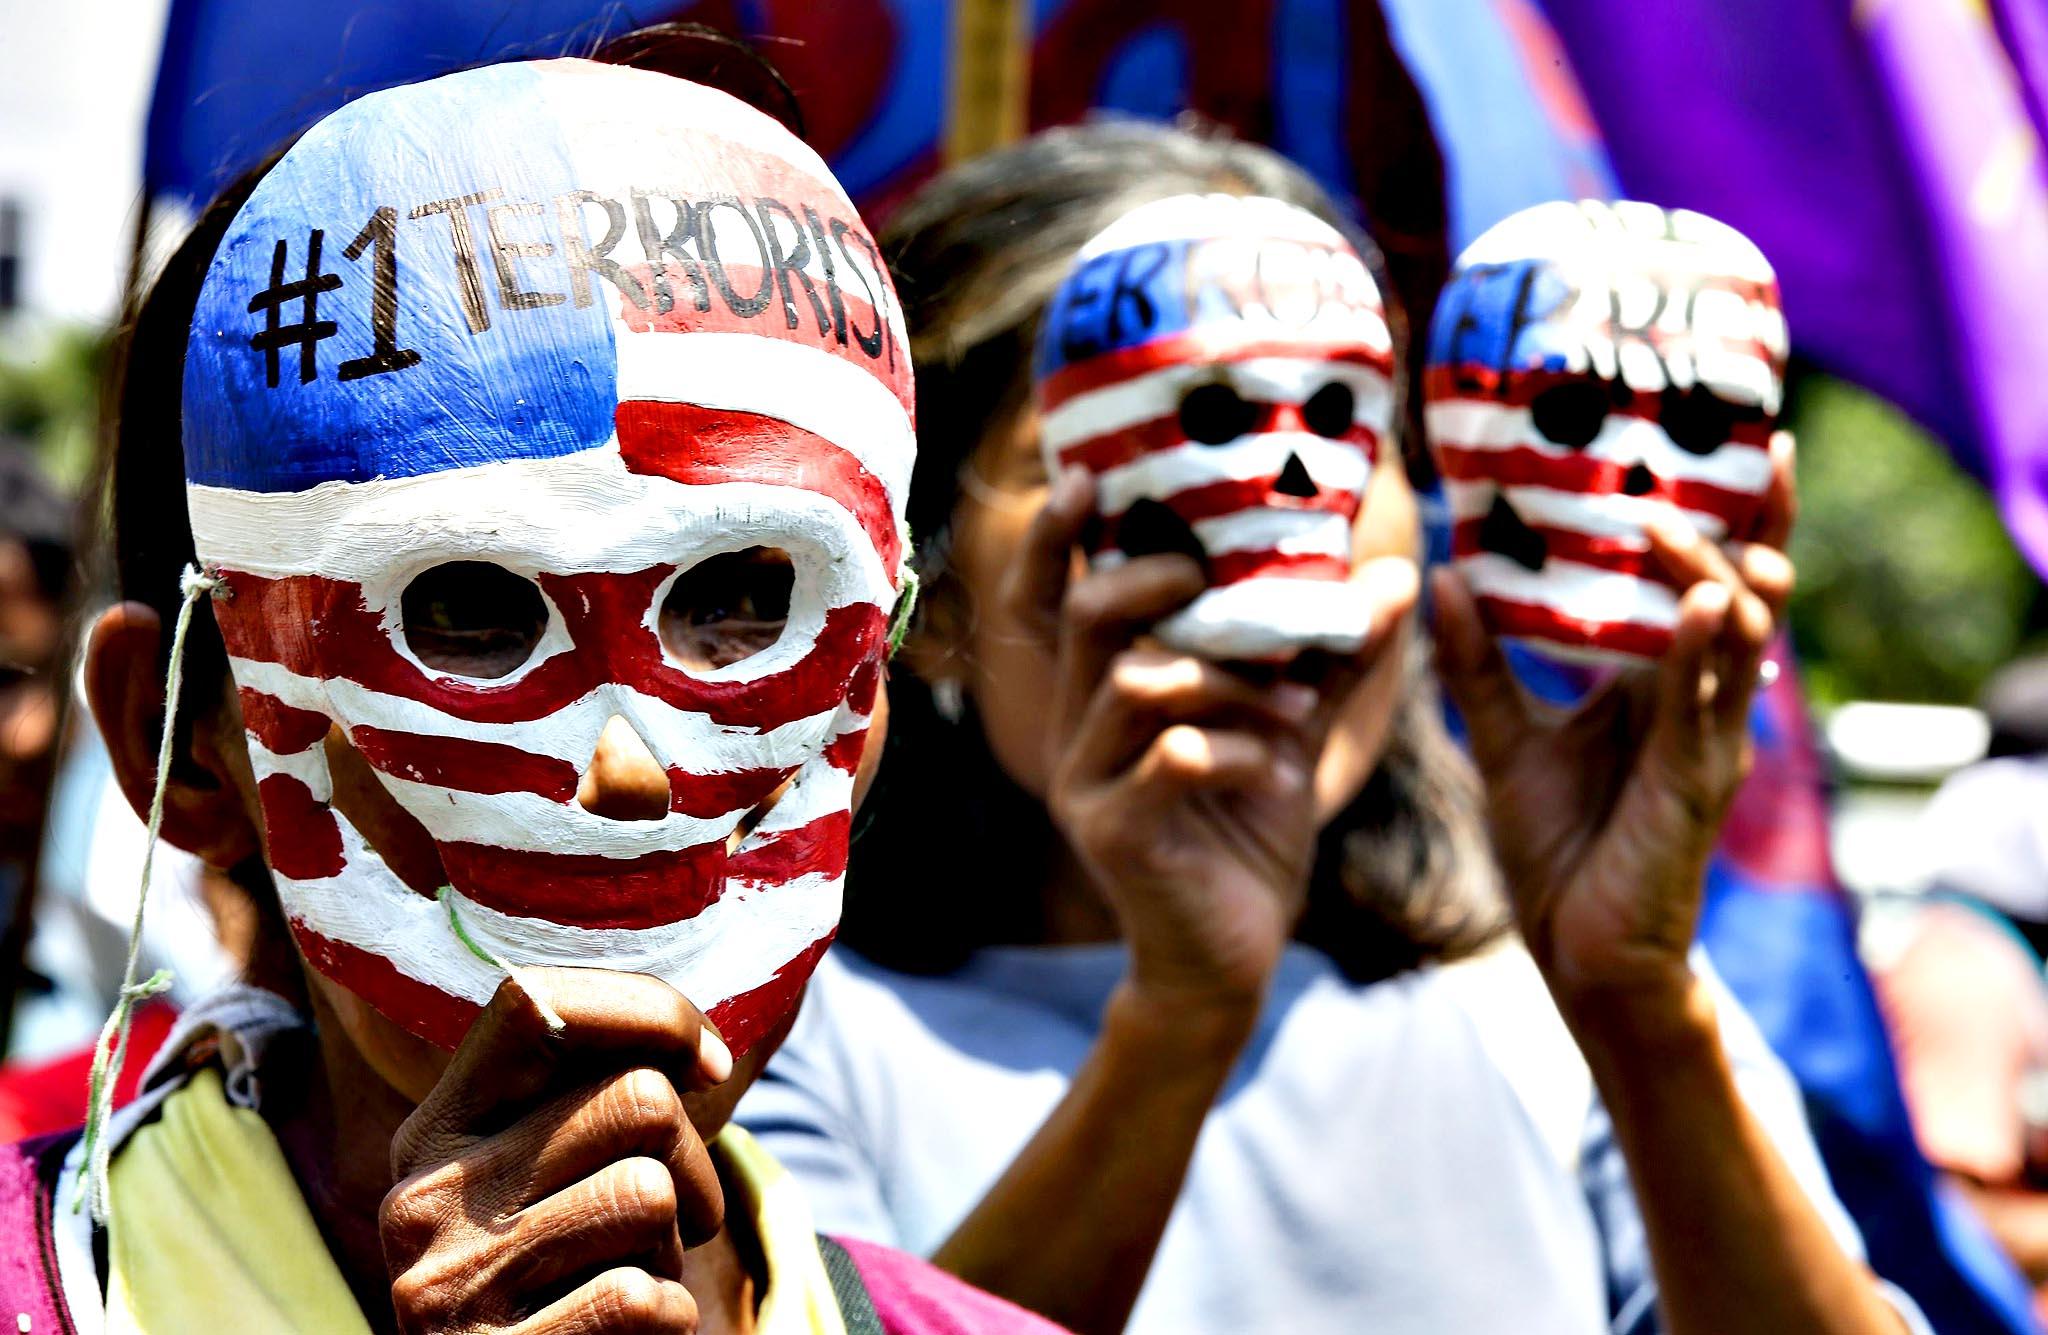 Filipino activists hold paper mache skulls  painted with US flags as they march outside the US embassy in Manila, Philippines on Monday in a rally condemning the upcoming visit of US President Barack Obama to the country. Activists also called for an end to the presence of US troops in the country and the Visiting Forces Agreement (VFA).